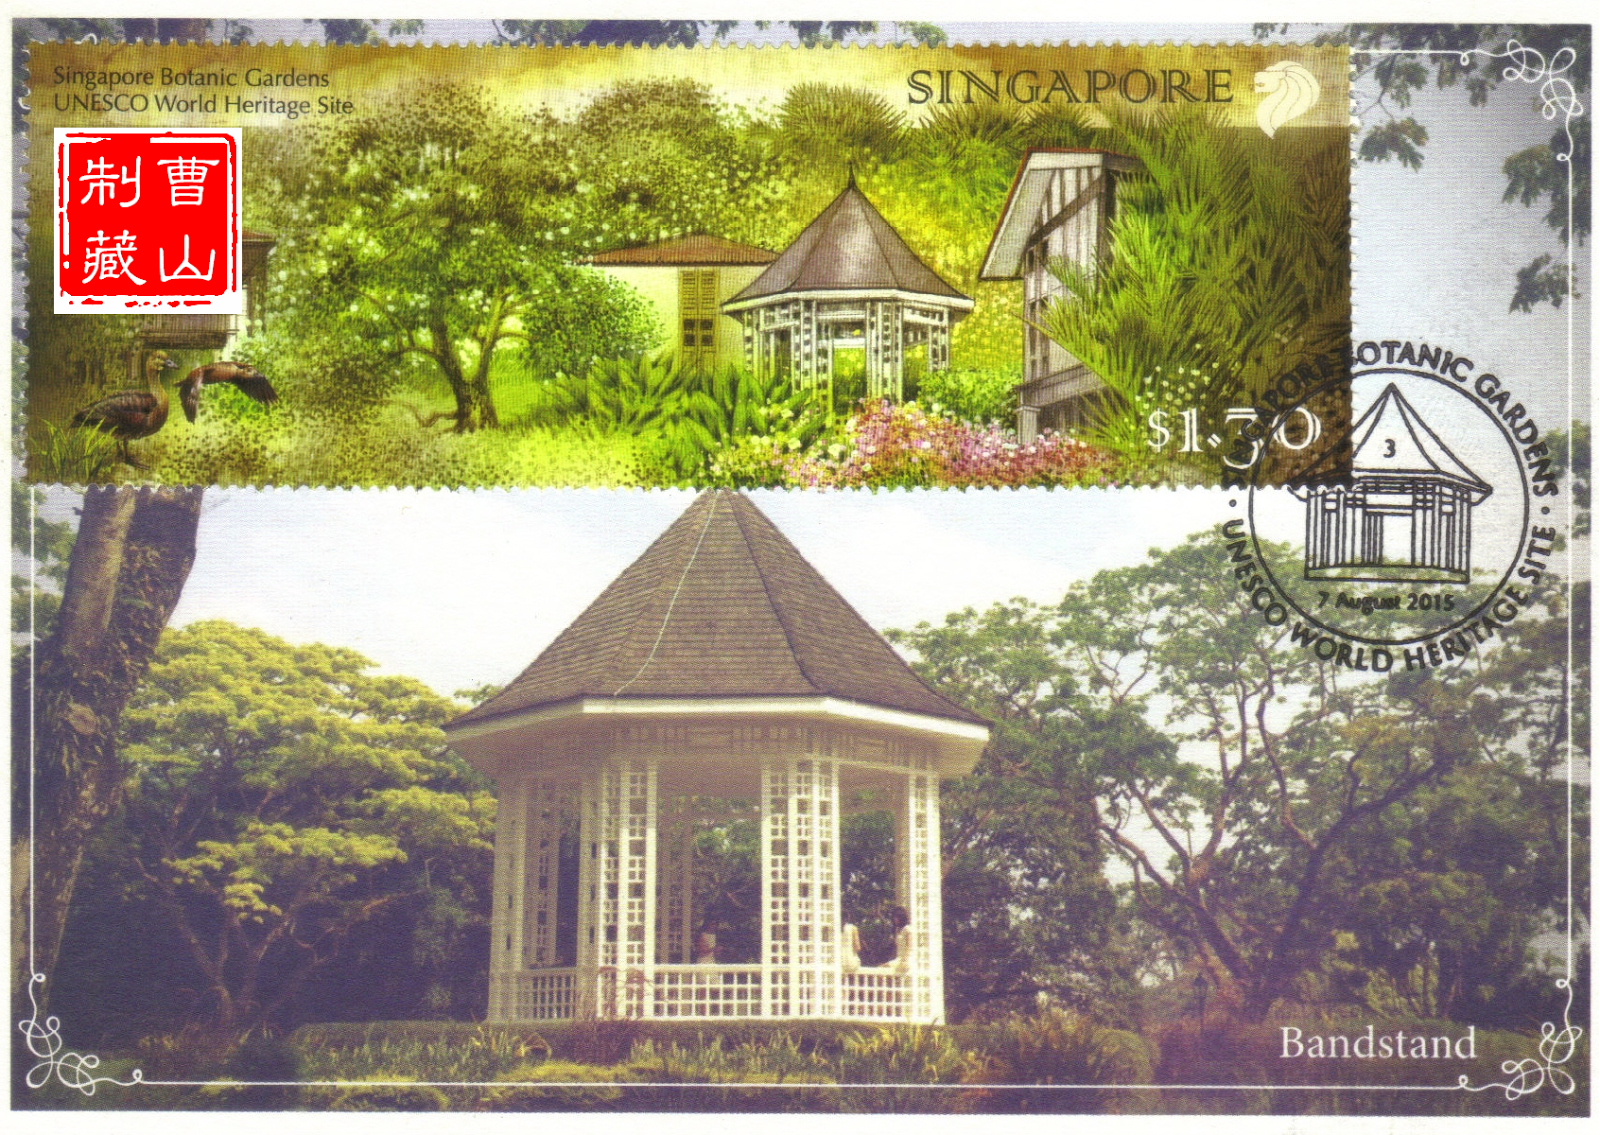 Singapore World Heritage Site - Bandstand in Botanical Garden